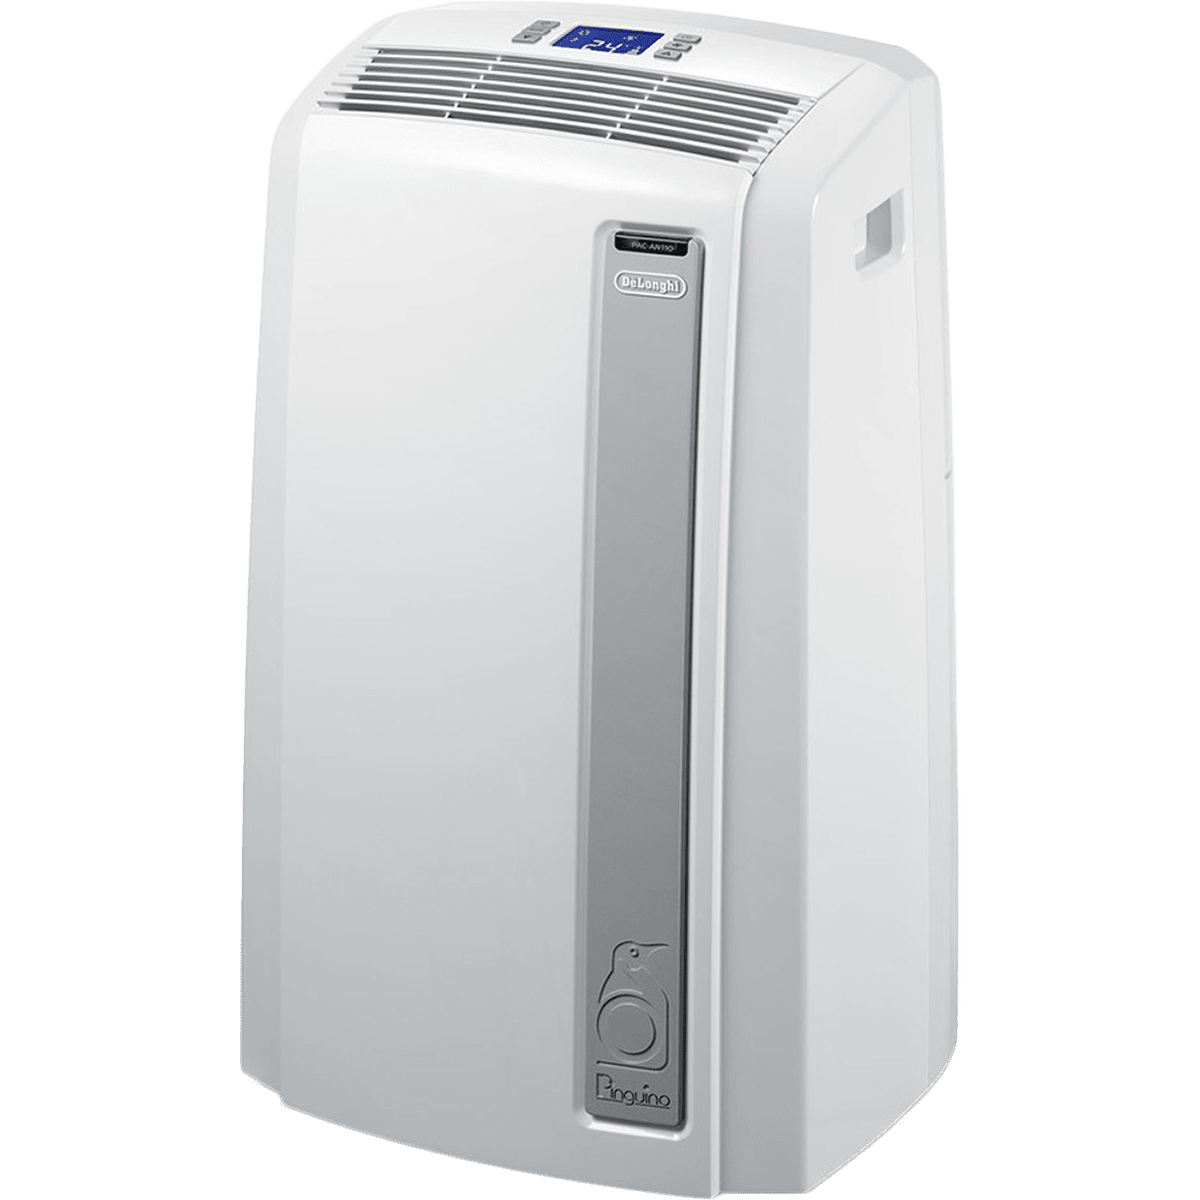 DeLonghi Pinguino 14,000 BTU Portable Air Conditioner de6319